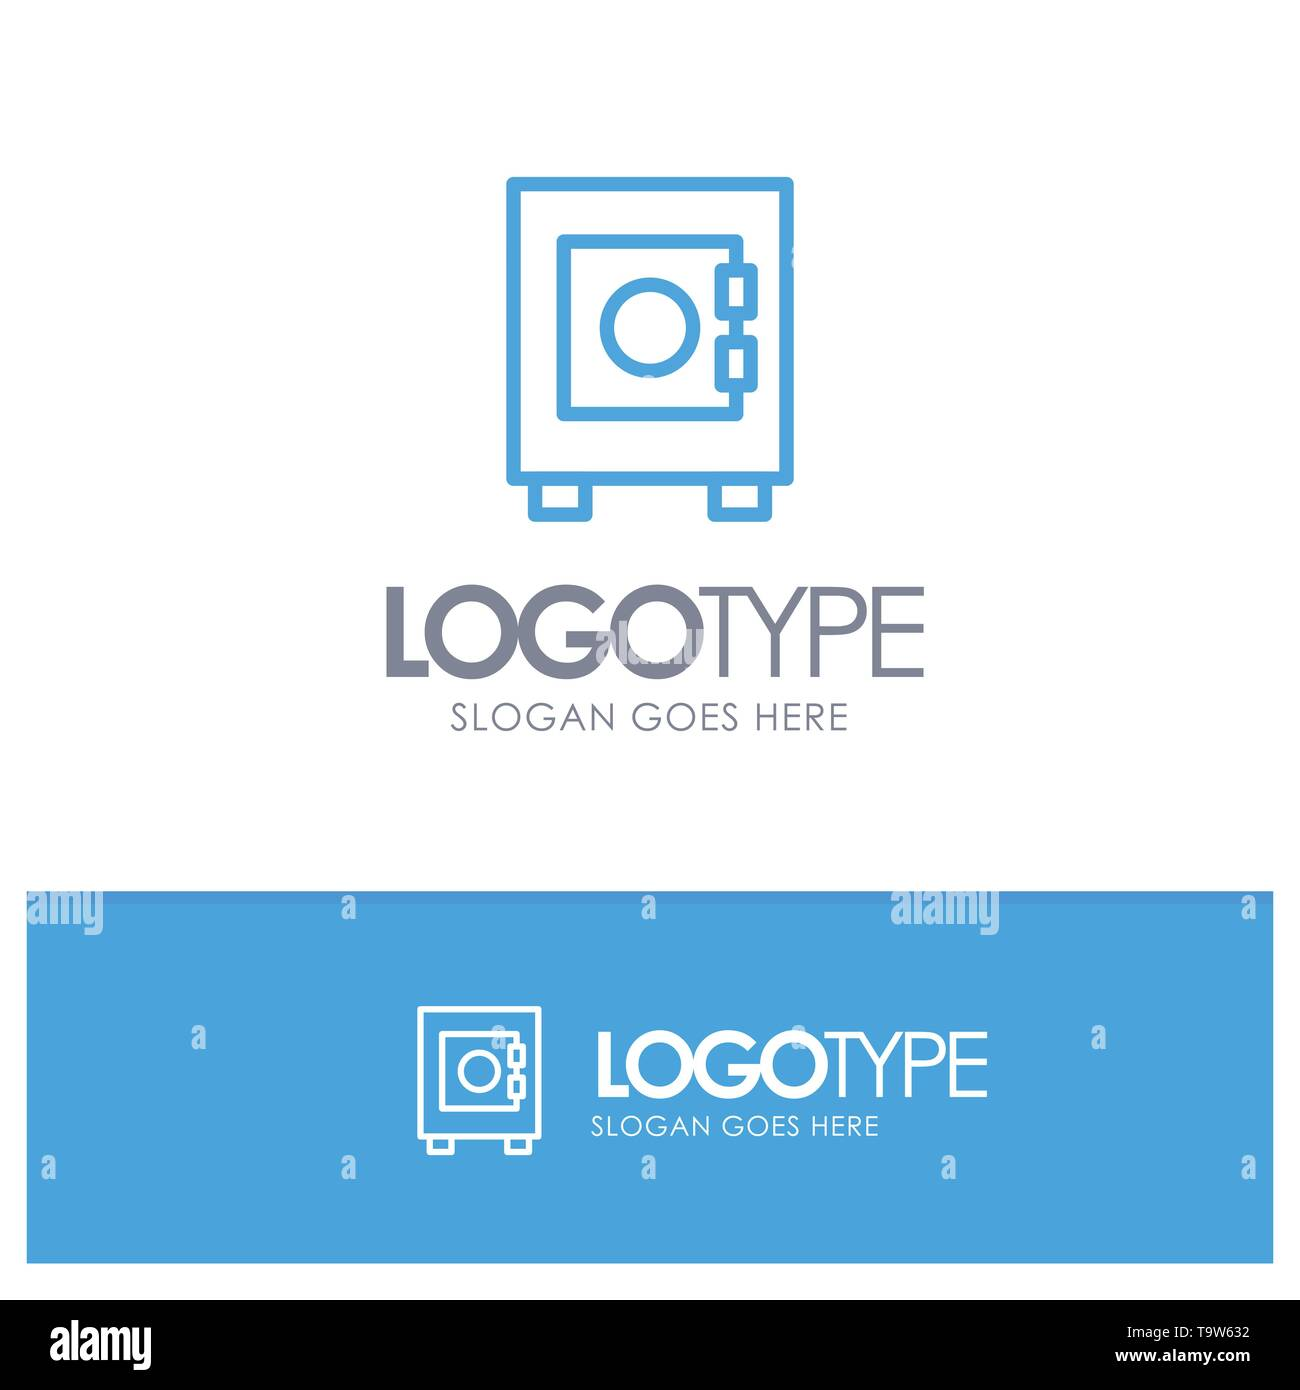 Locker, Lock, User Blue Outline Logo Place for Tagline - Stock Image